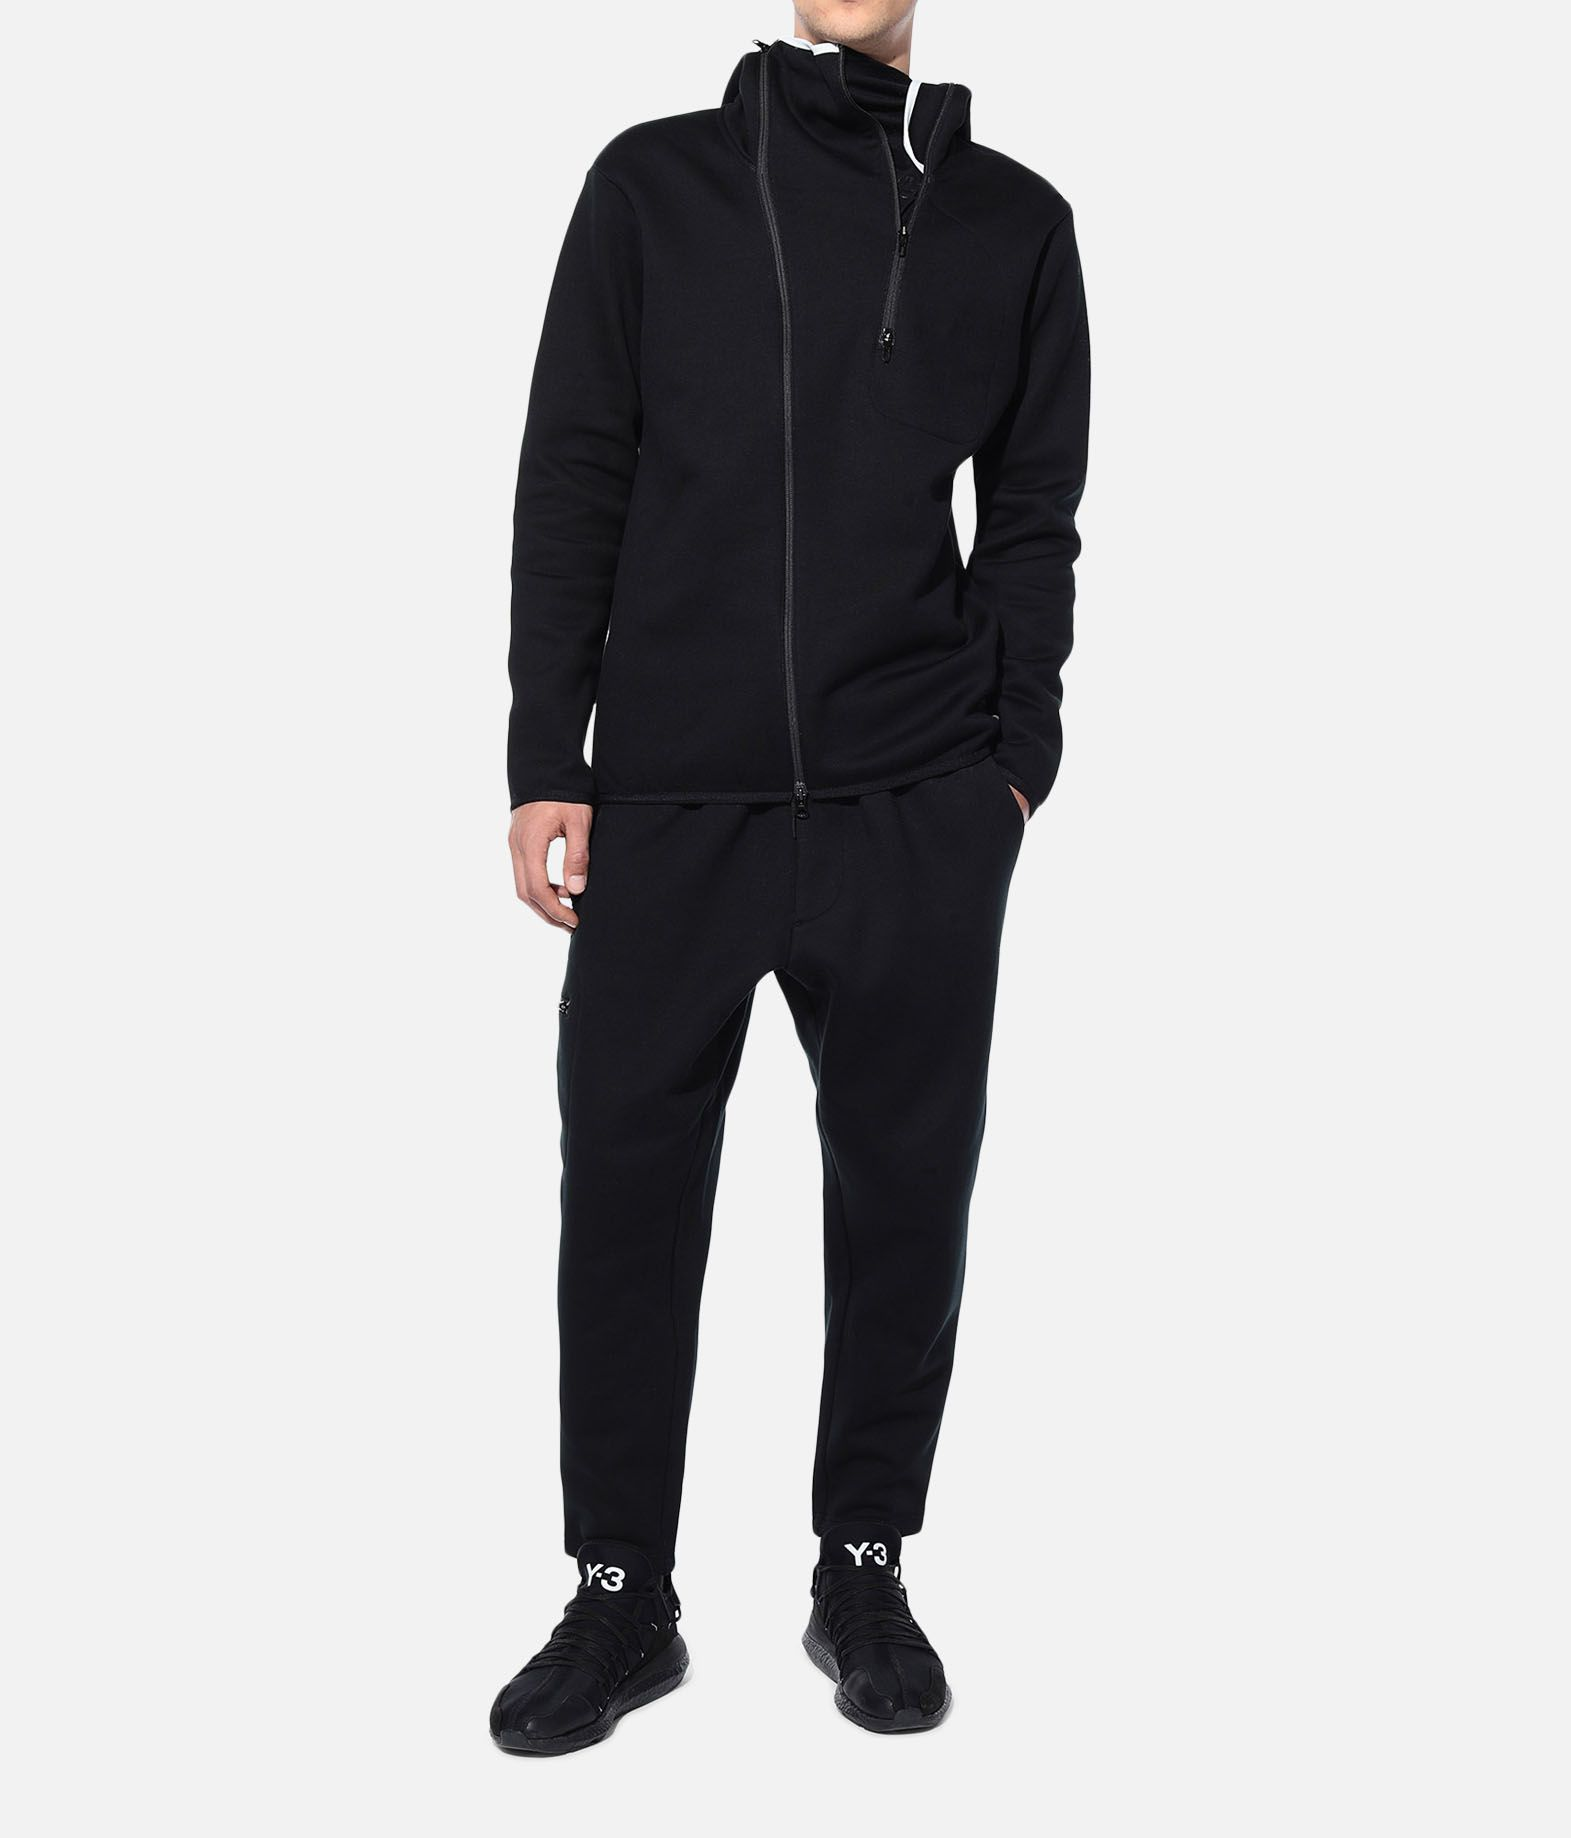 Y-3 Y-3 Binding Track Jacket Track top Man a